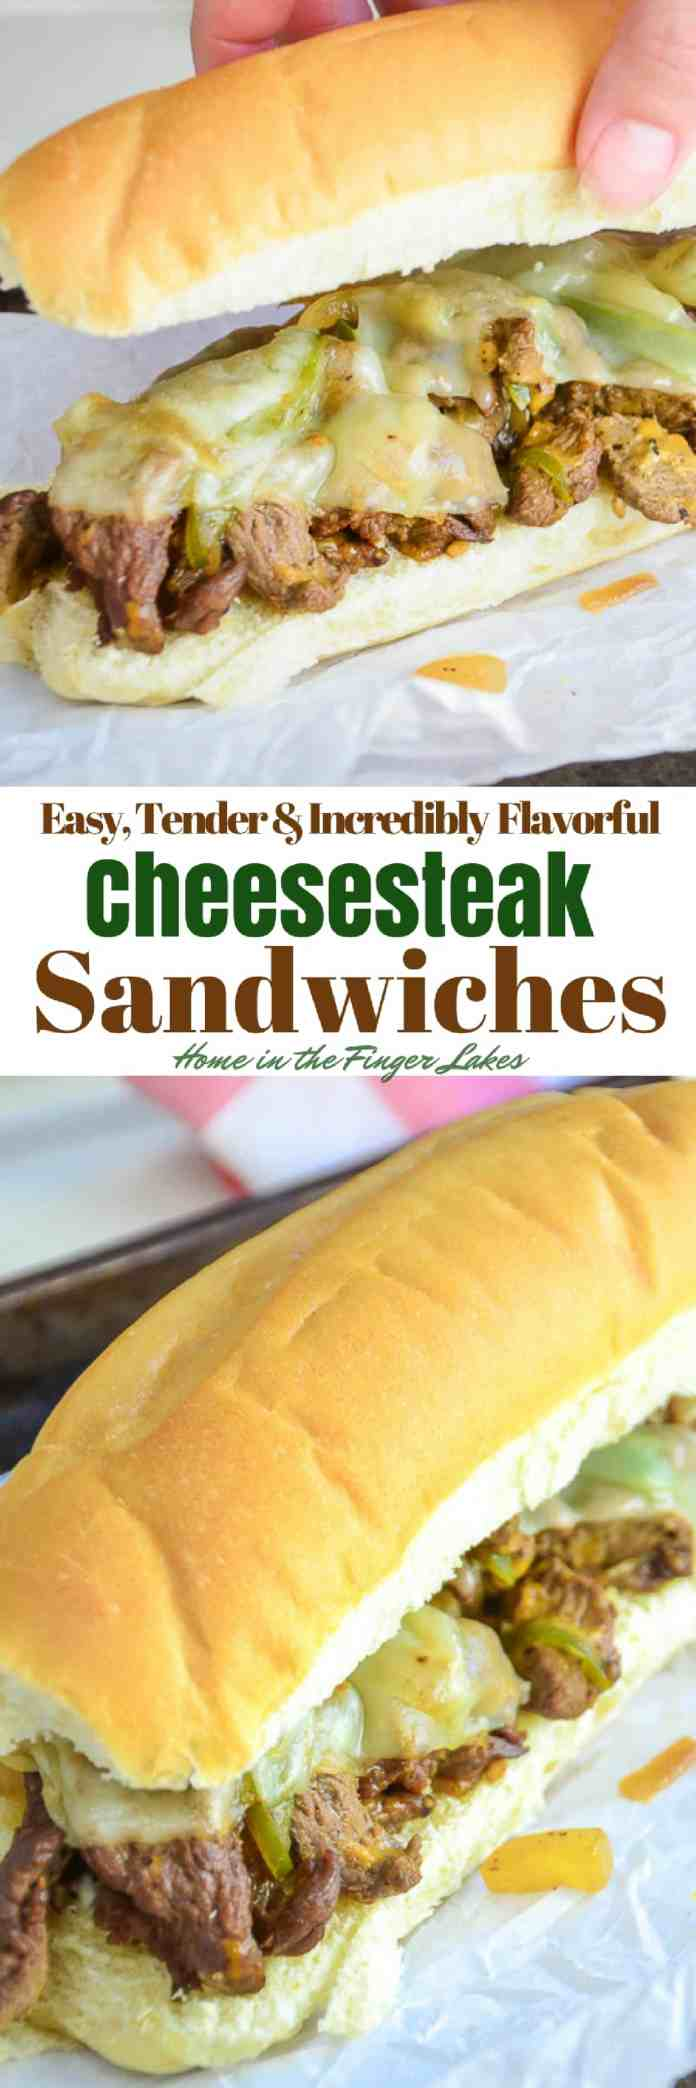 These Insanely Delicious (and Quick!) Cheesesteak Sandwiches are the answer to a busy evening when you are exhausted and everyone is hungry.